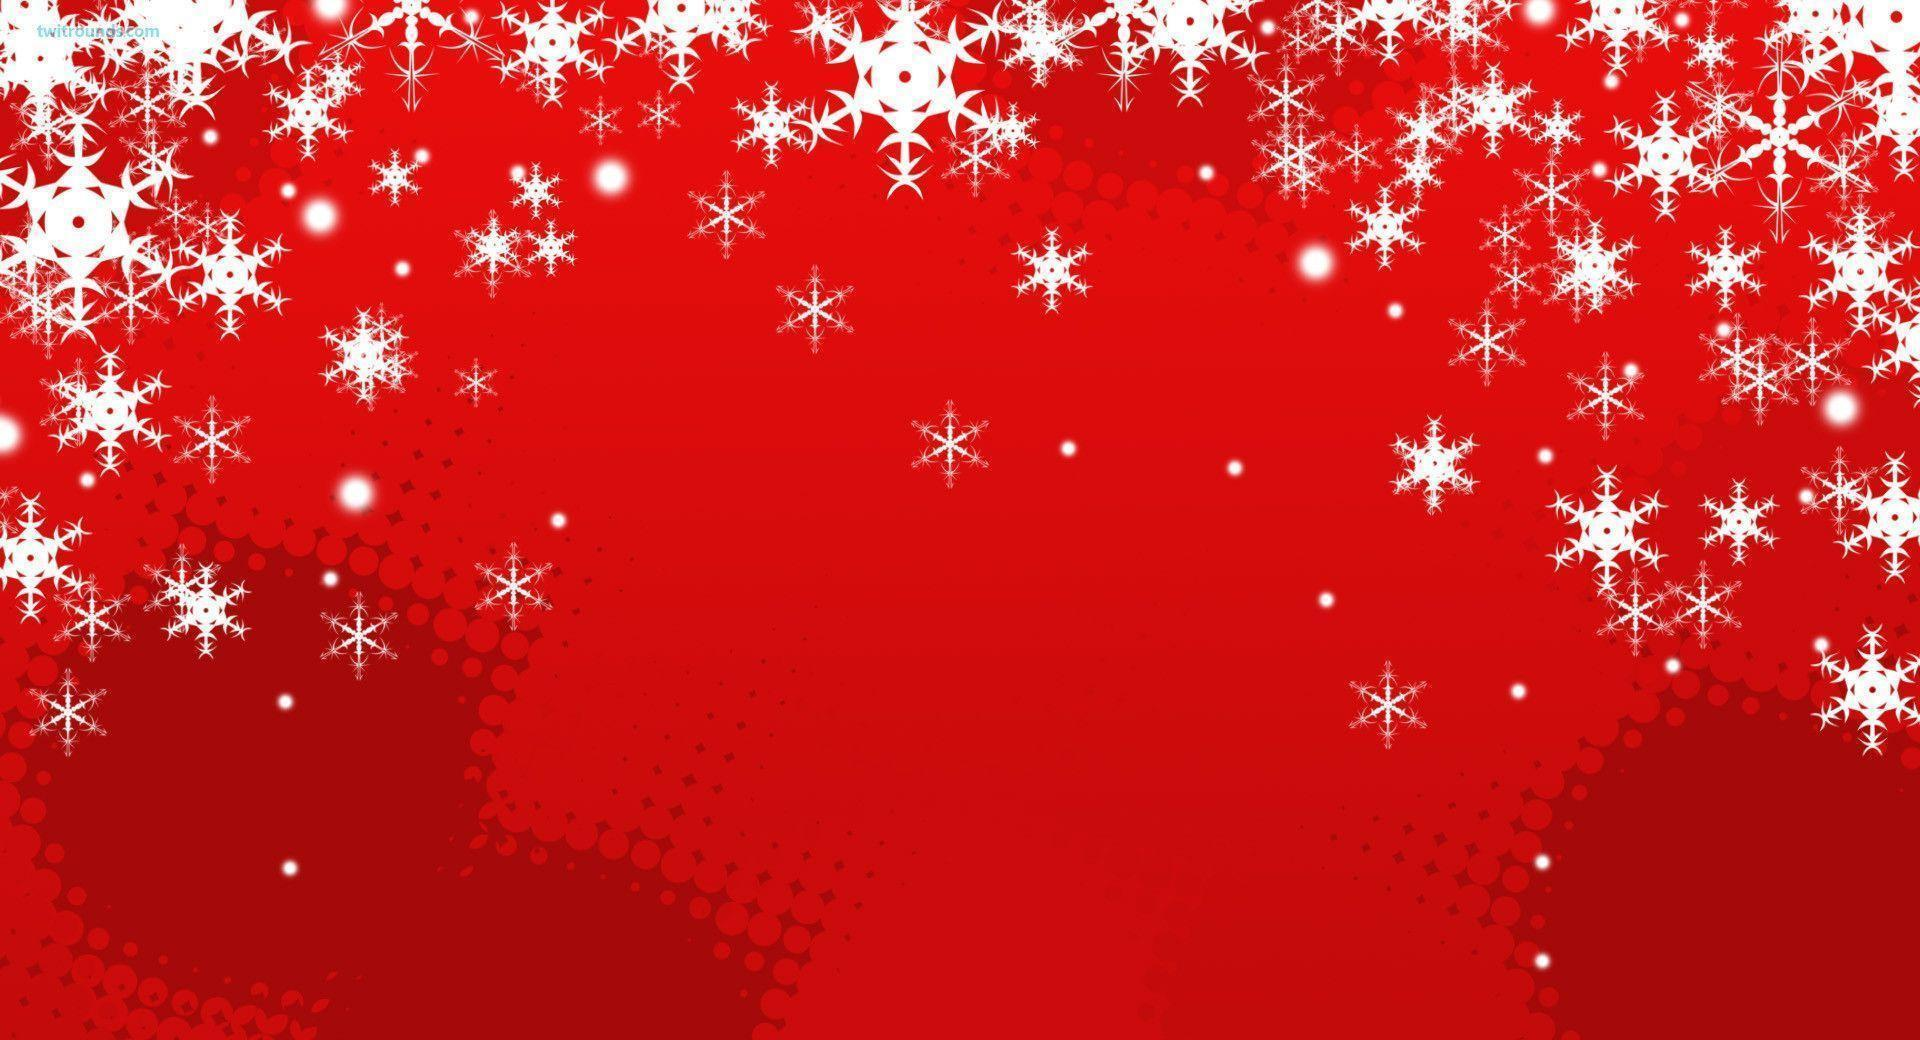 red christmas background ai - photo #10